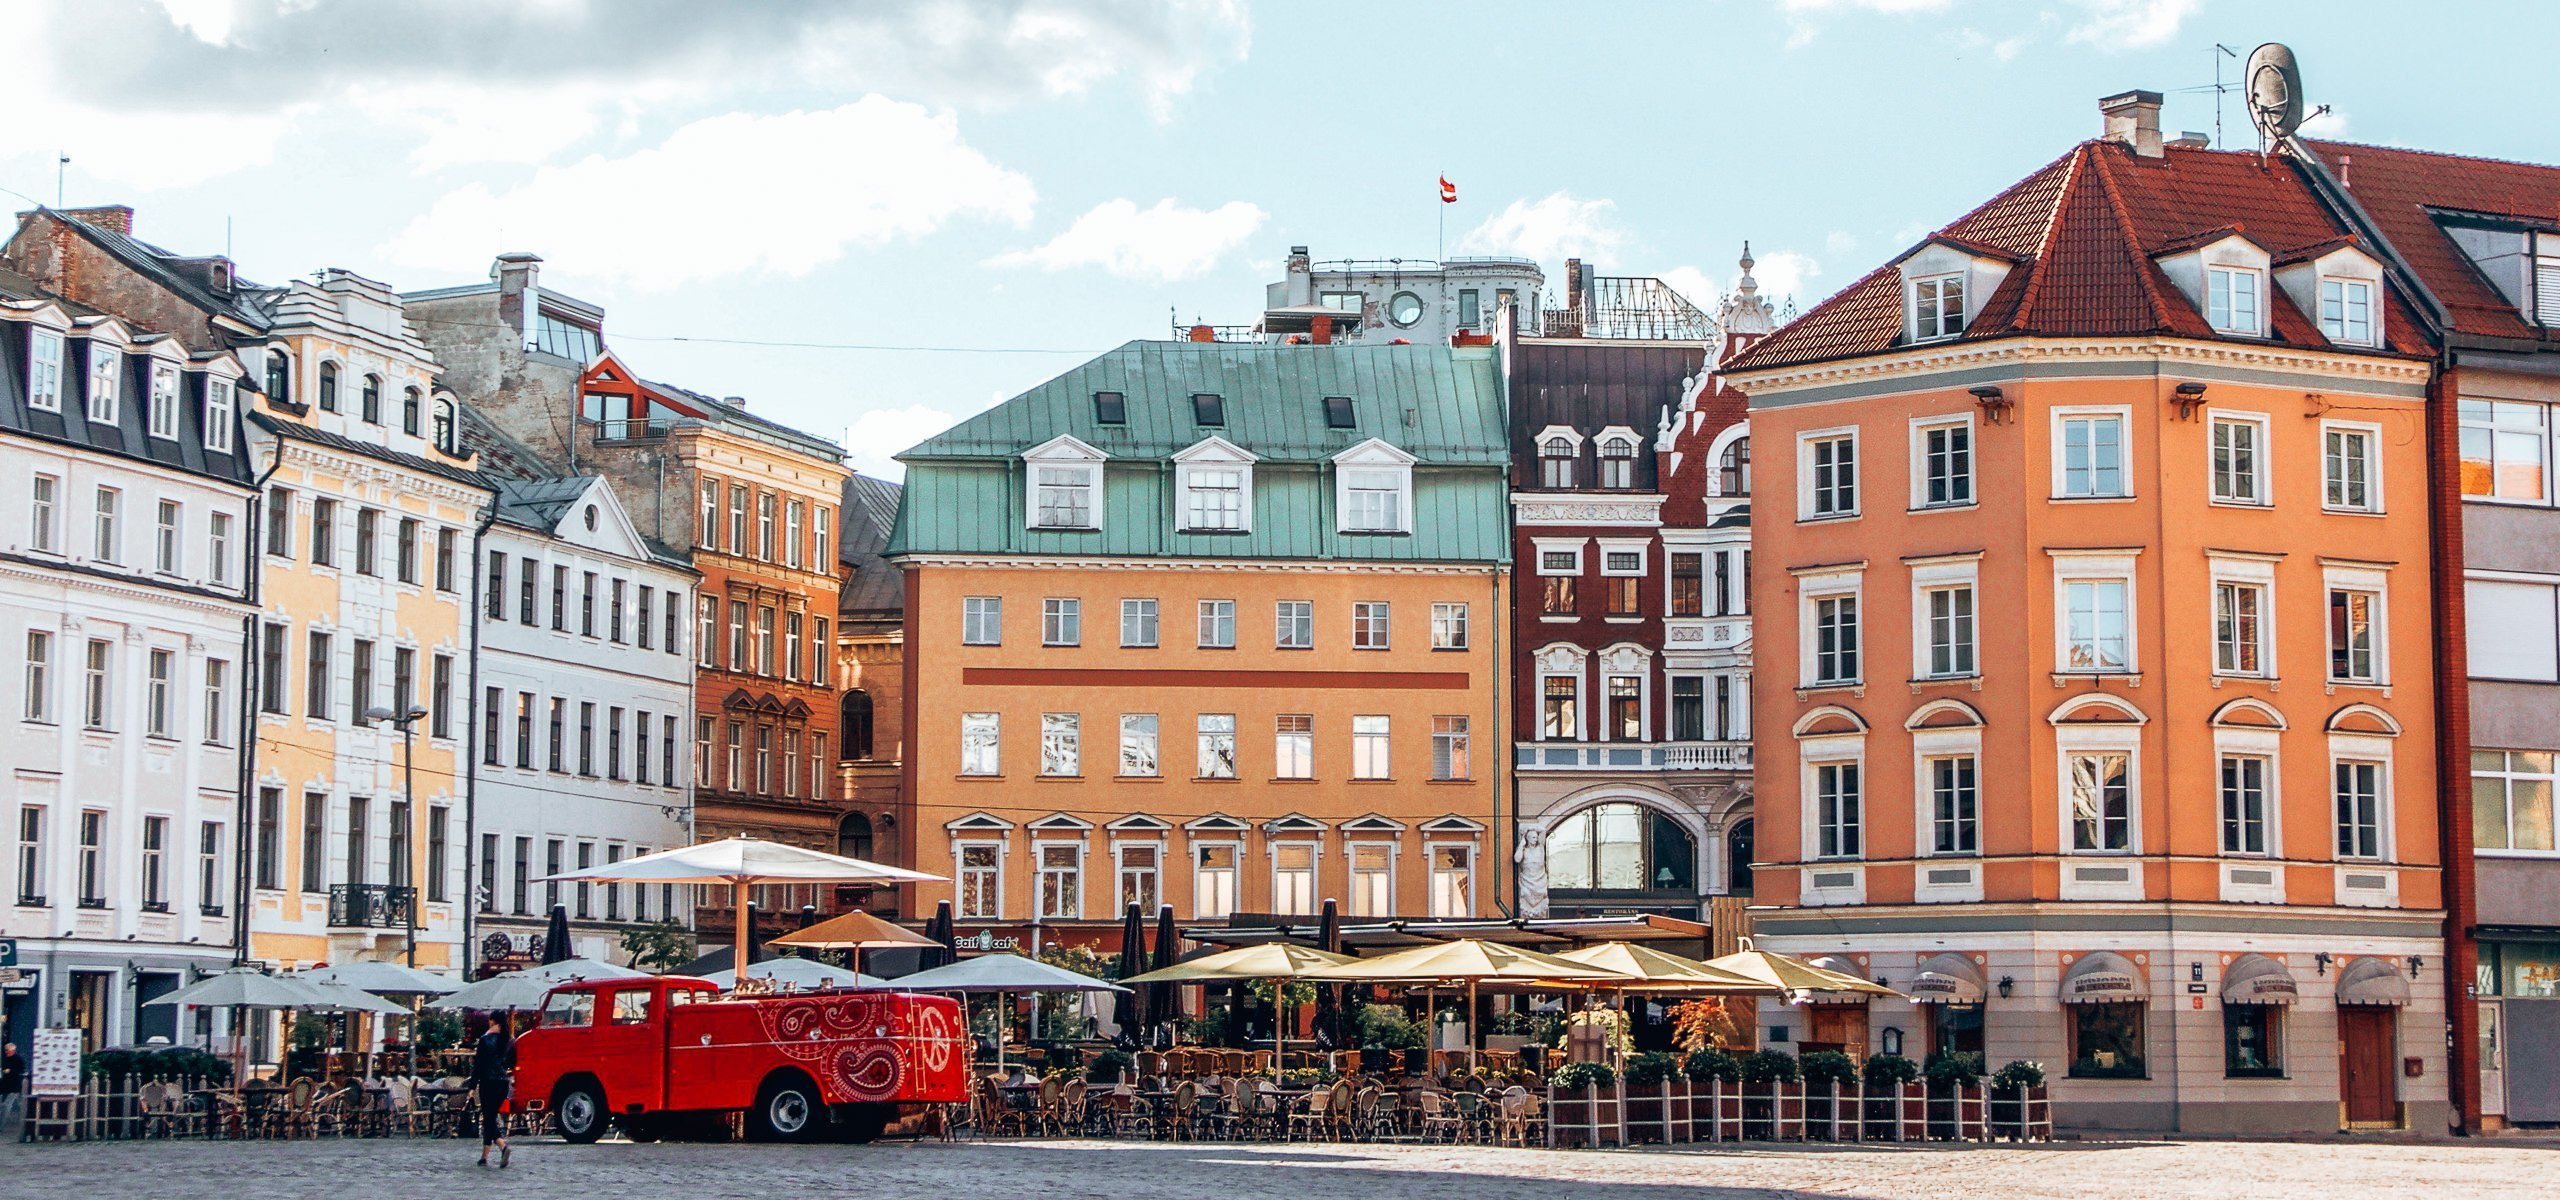 One Day in Riga Latvia | Colourful facades in the Old Town of Riga, Latvia